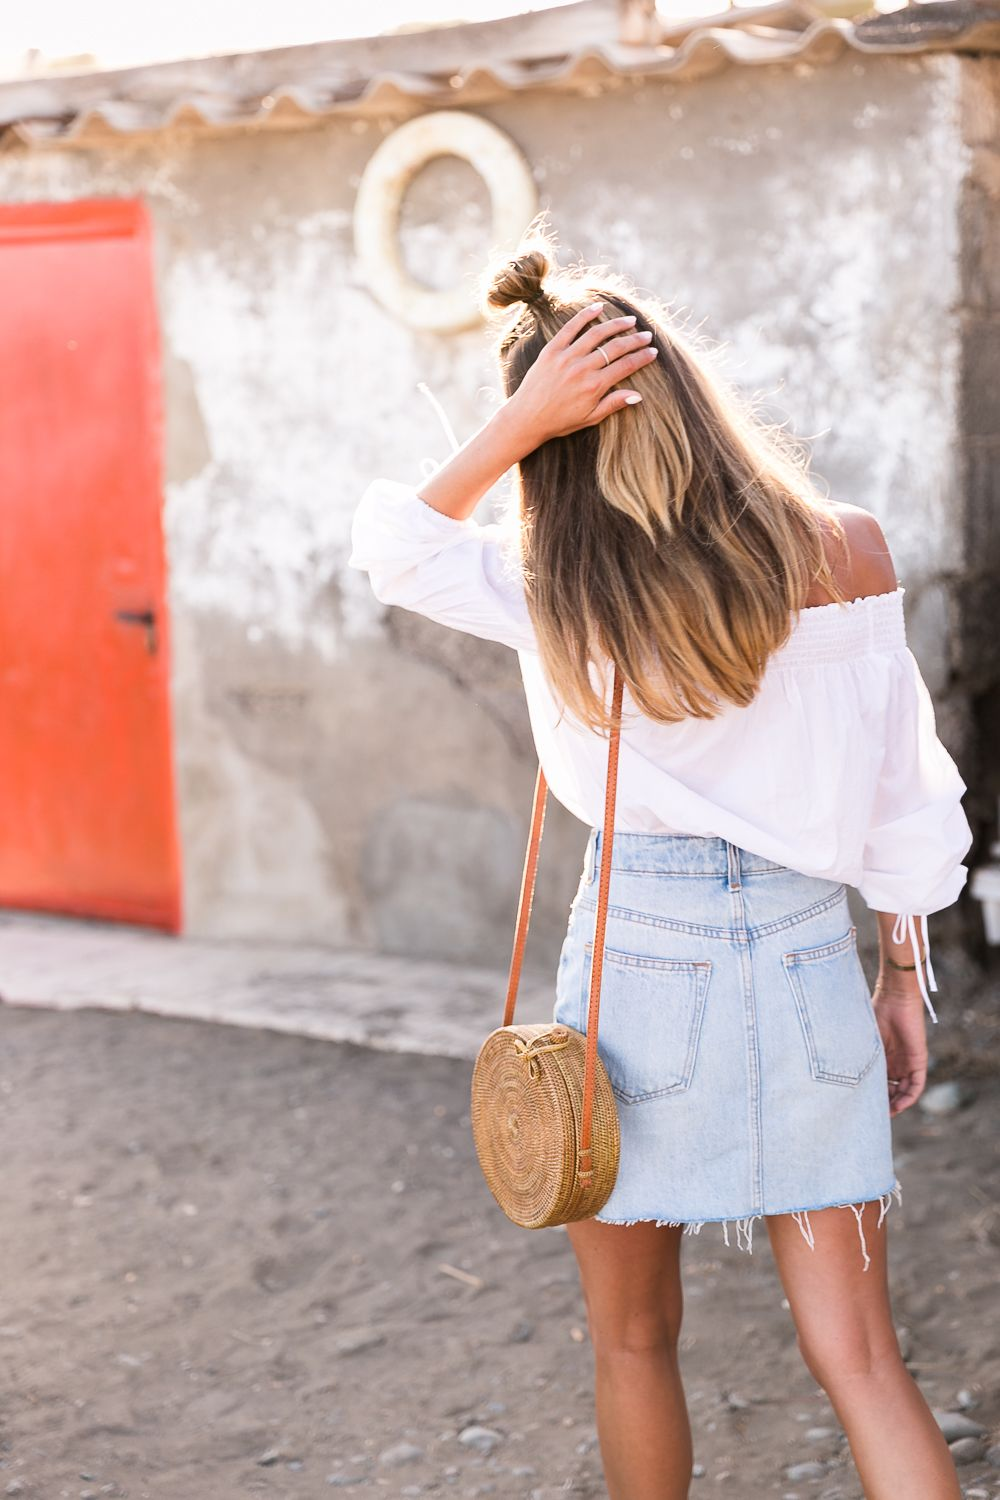 red shoes outfit jeans skirt denim off the shoulder top straw bag summerlook fashionblog 9